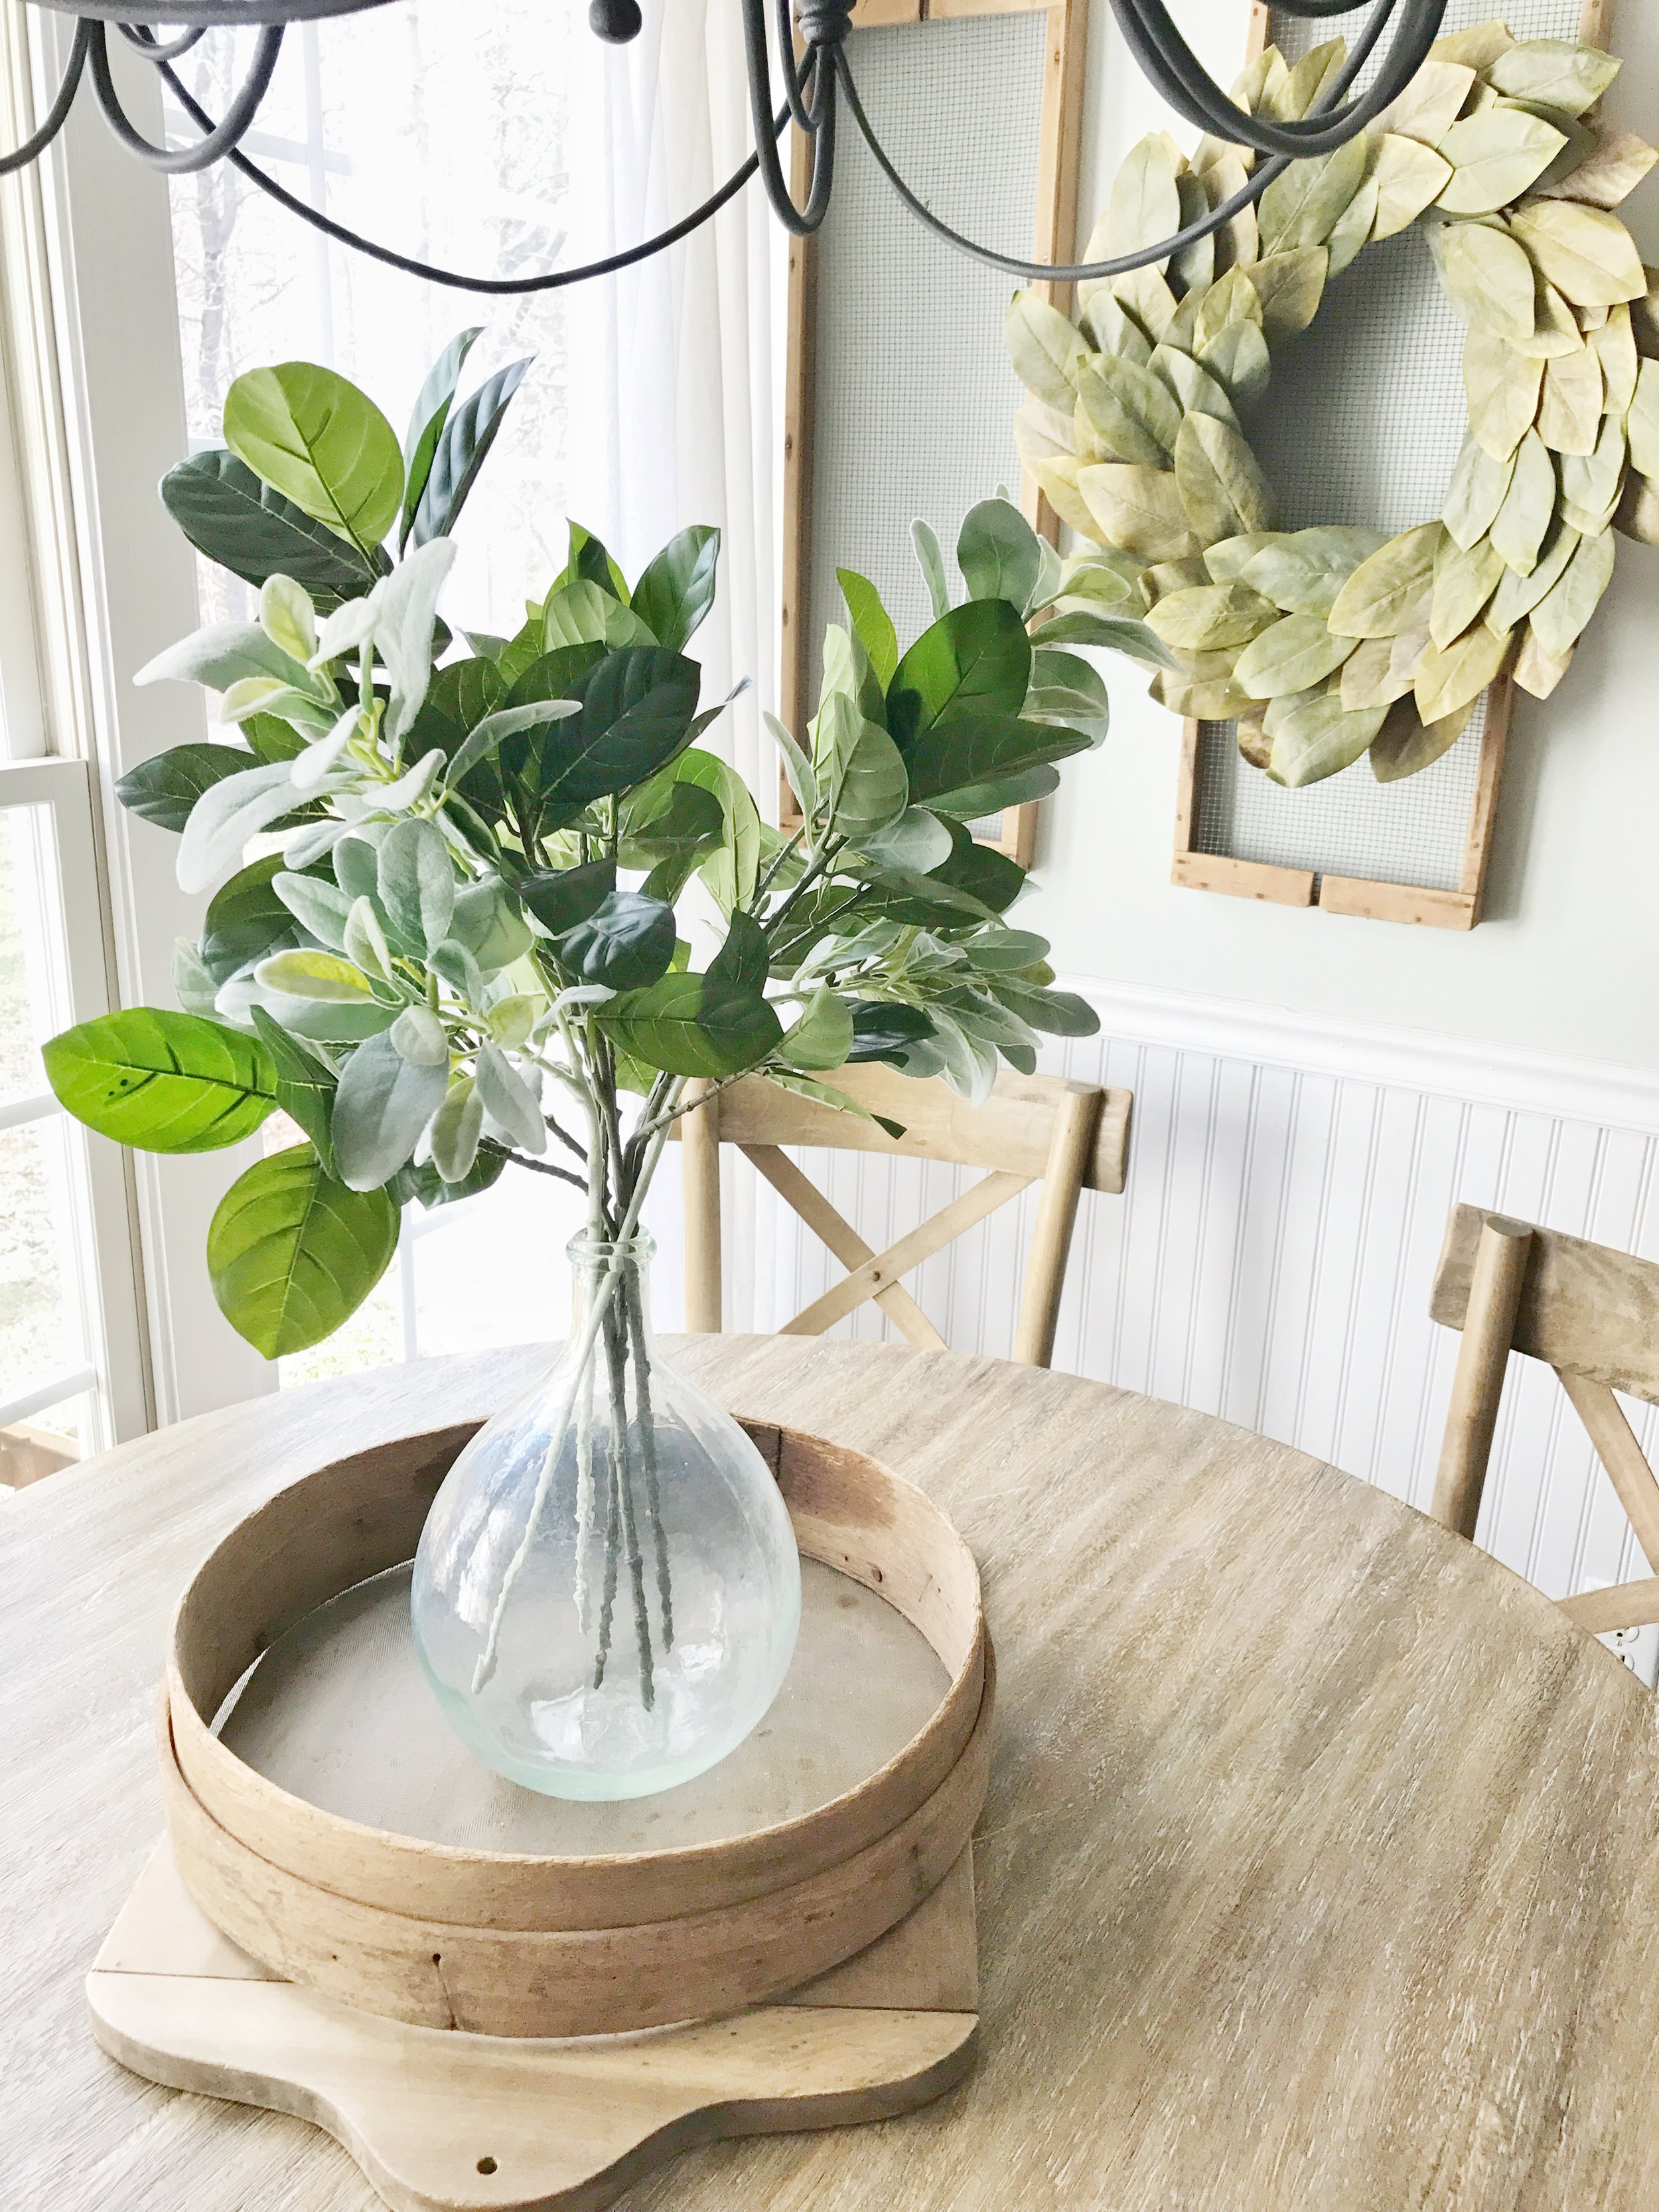 Home Tour- Farmhouse Style Breakfast Nook with a Layered Centerpiece with Antique Cutting Board, Sifter, and European Demijohn by Plum Pretty Decor and Design